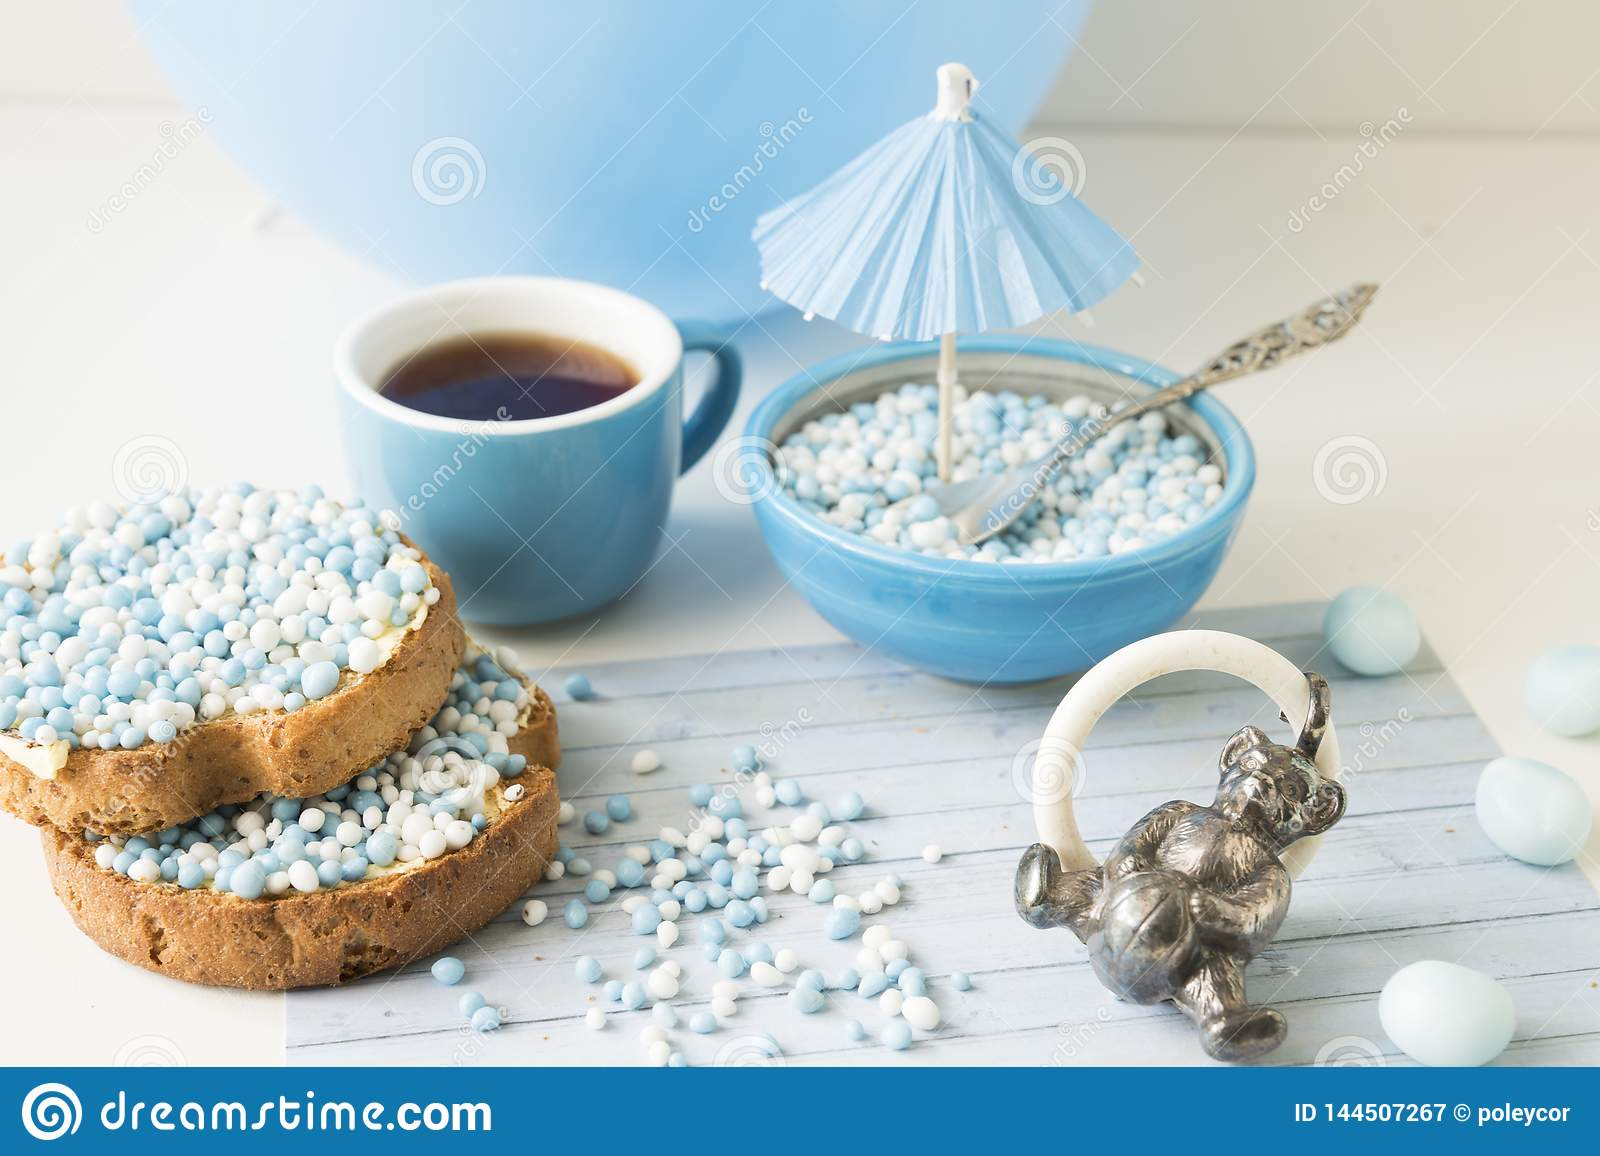 Rusk with blue aniseed balls, muisjes, Dutch treat for when a baby boy is born in The Netherlands